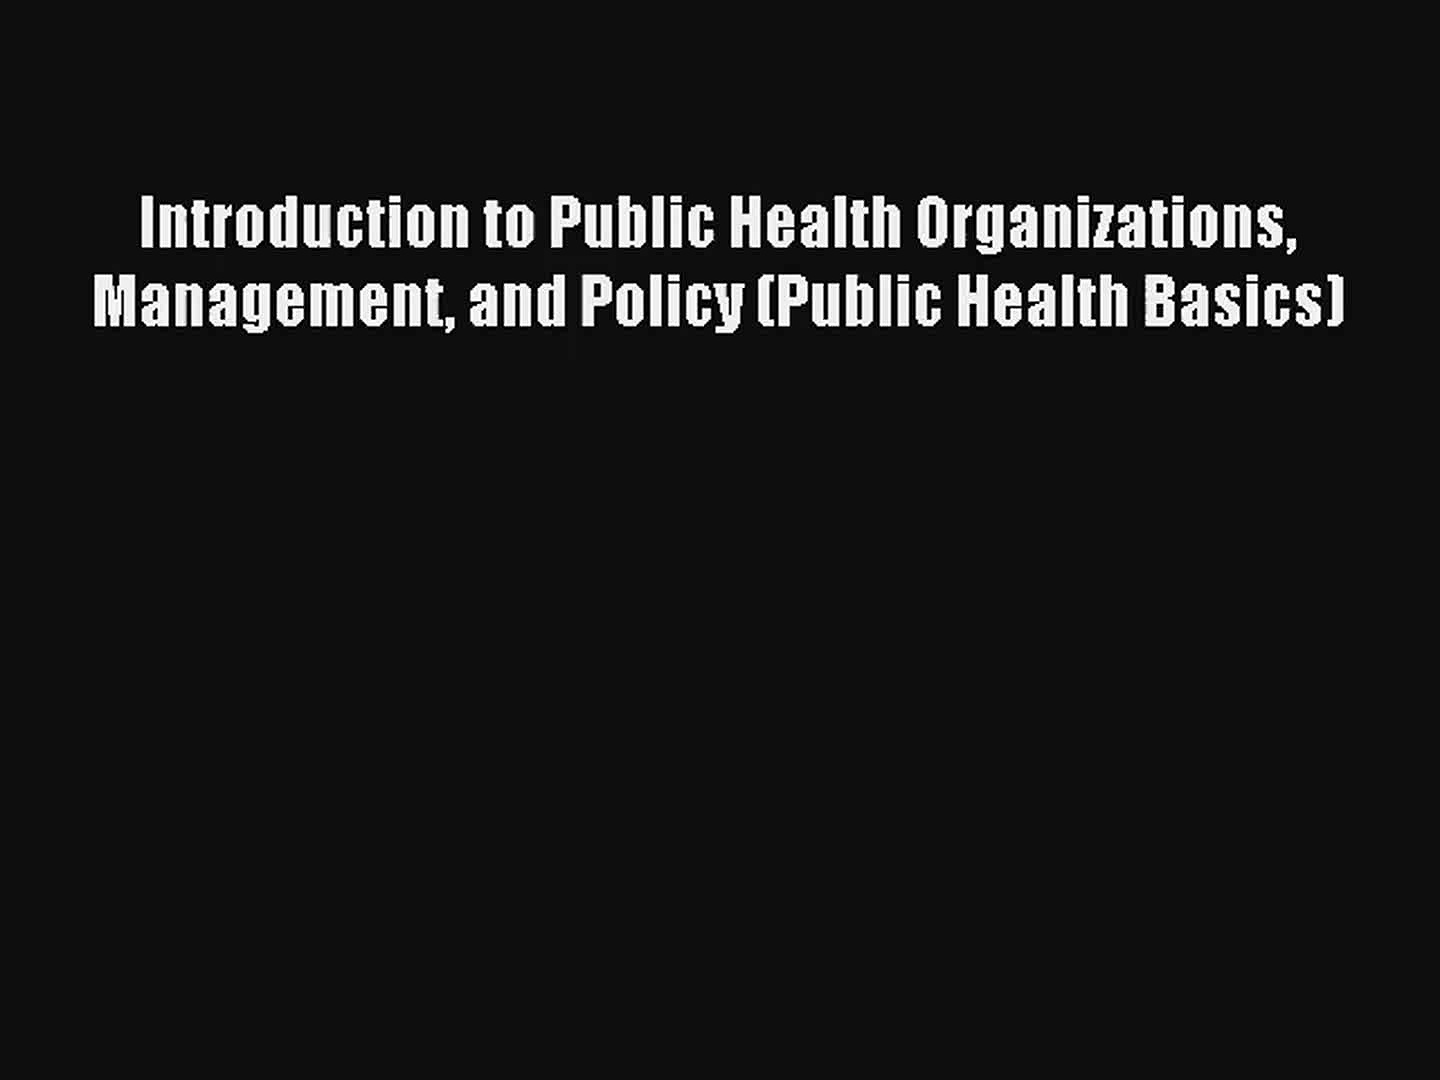 Read Introduction to Public Health Organizations Management and Policy (Public Health Basics)#